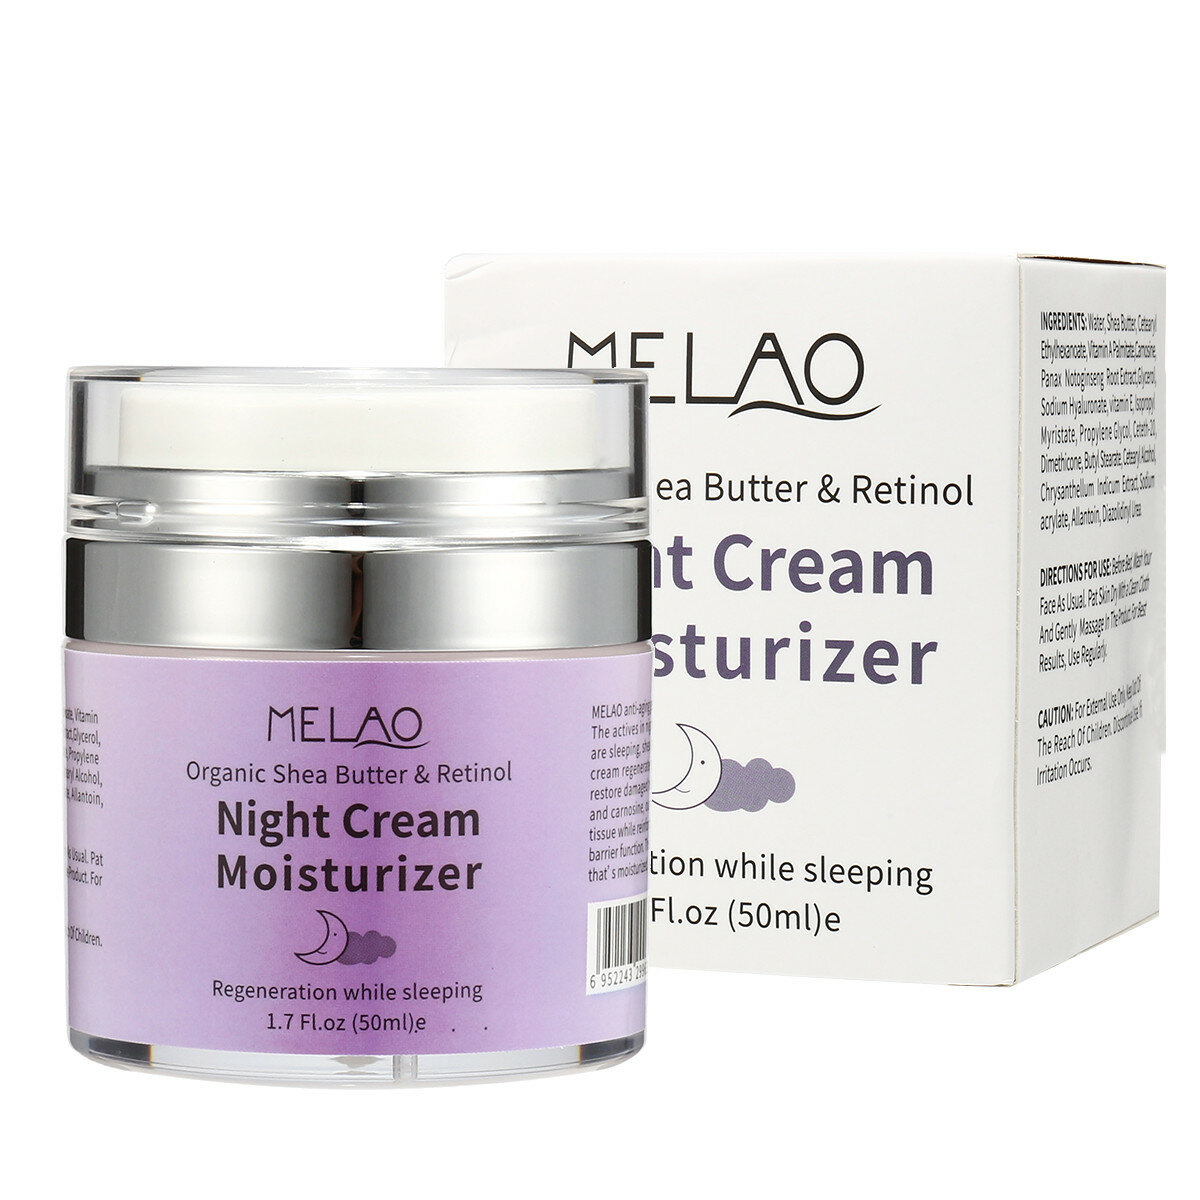 Melao Organic Shea Butter Retinol Night Cream Moisturizer Sleeping Facial Skincare 50ml